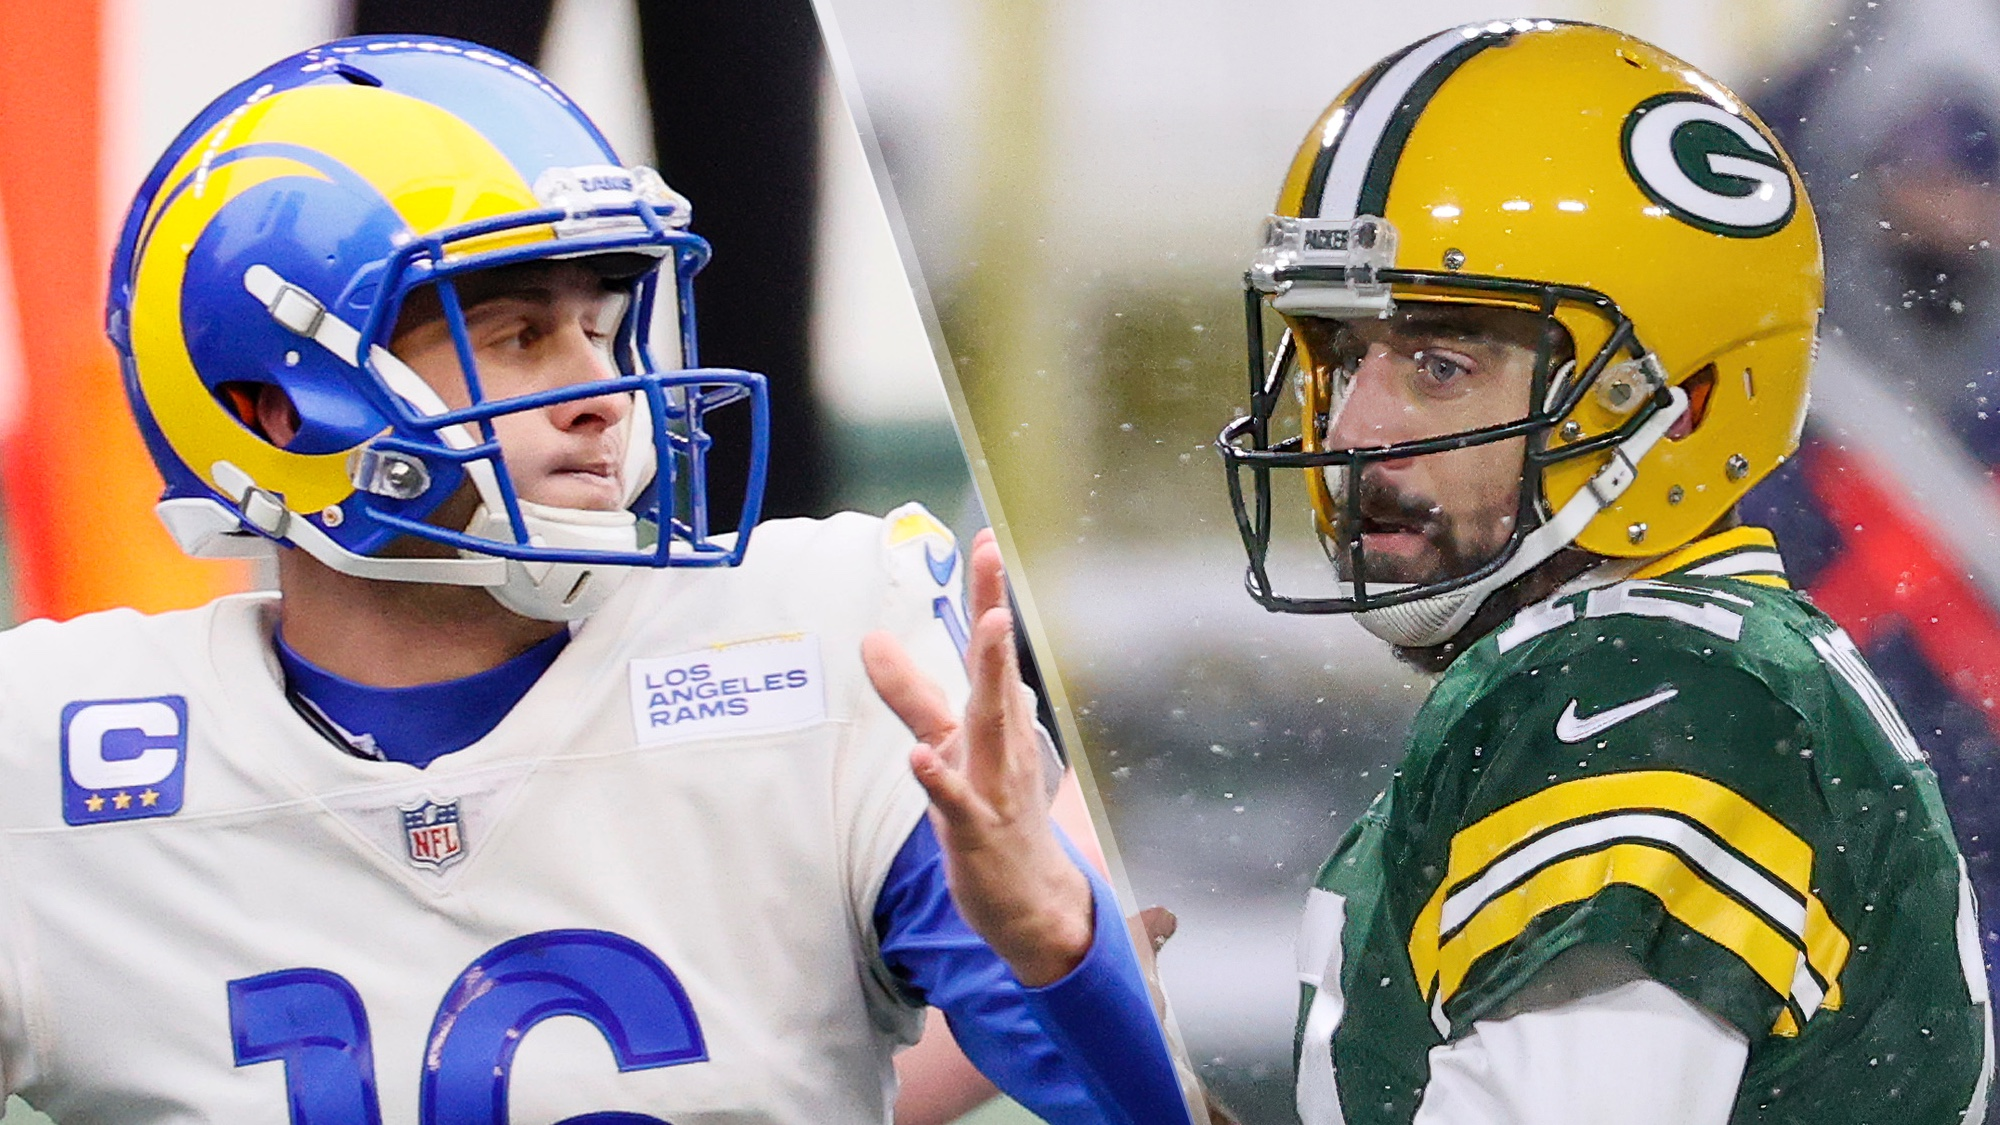 Rams vs Packers live stream: How to watch NFL playoffs game online | Tom's Guide